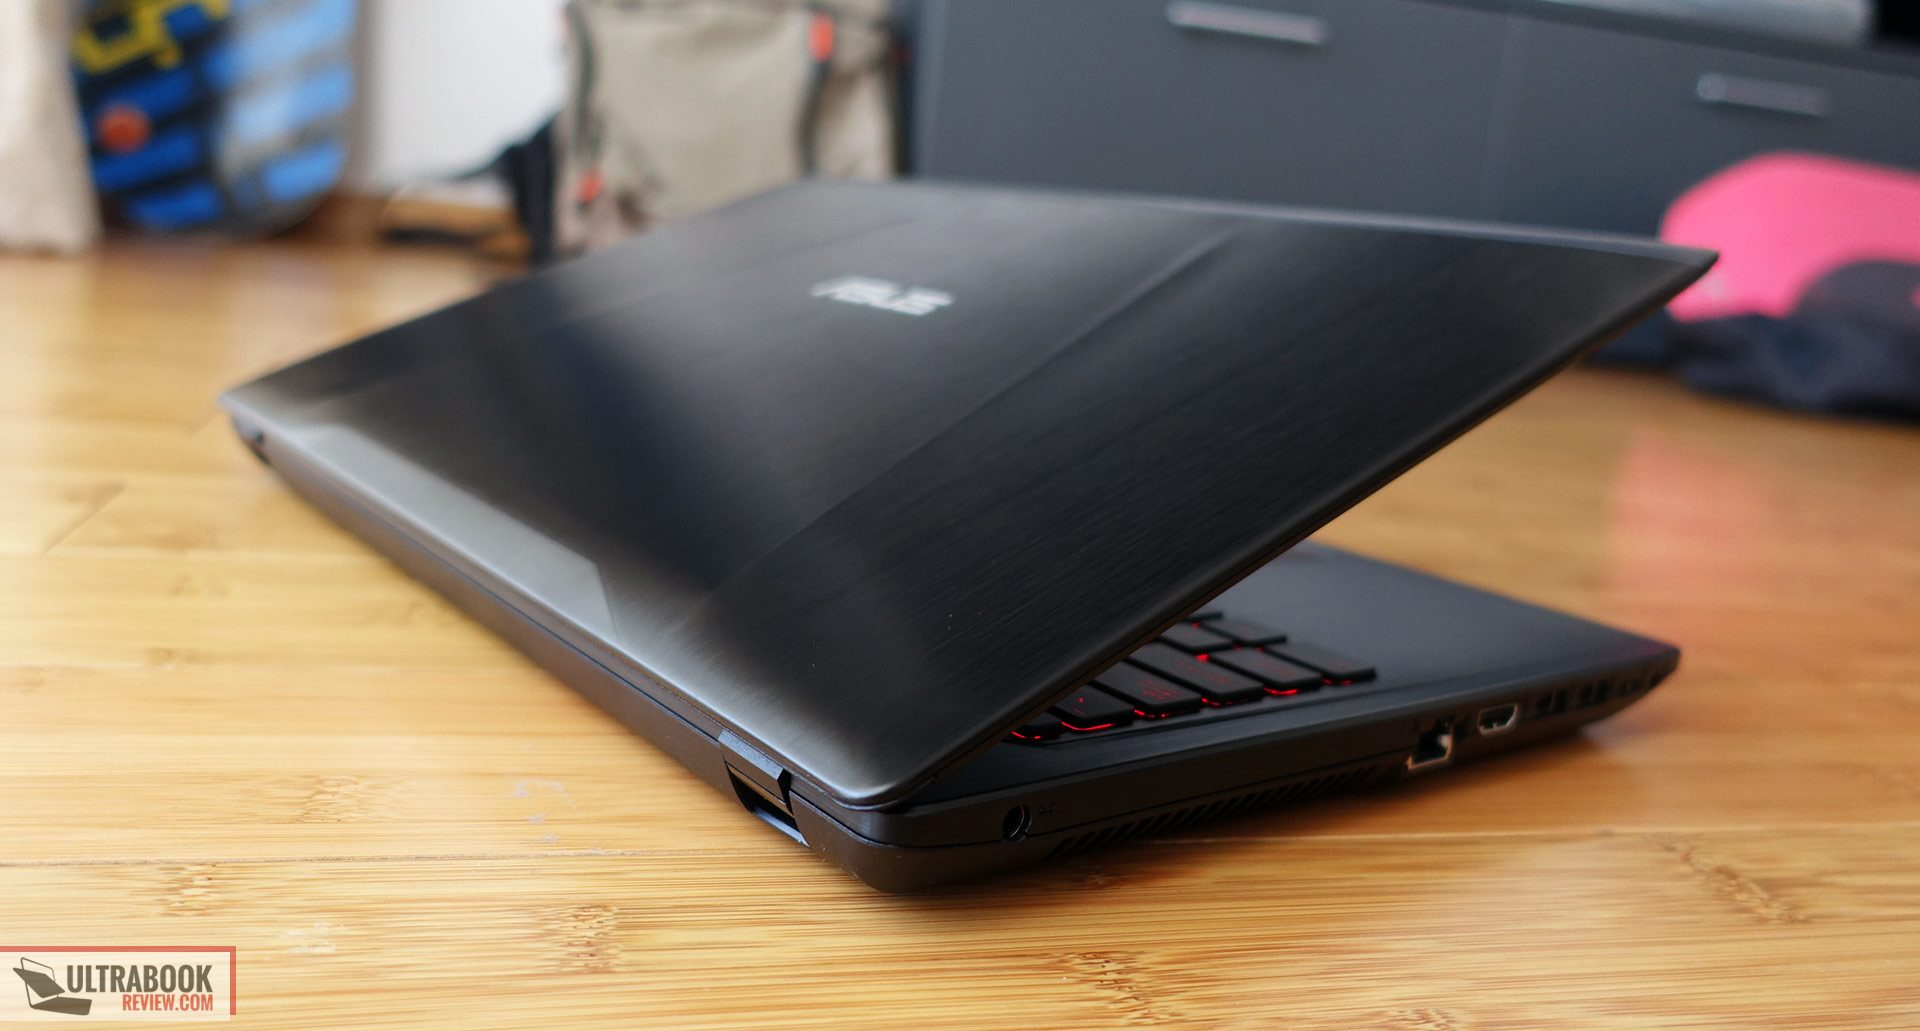 Asus ROG Strix GL553VE review - multimedia laptop with Core i7